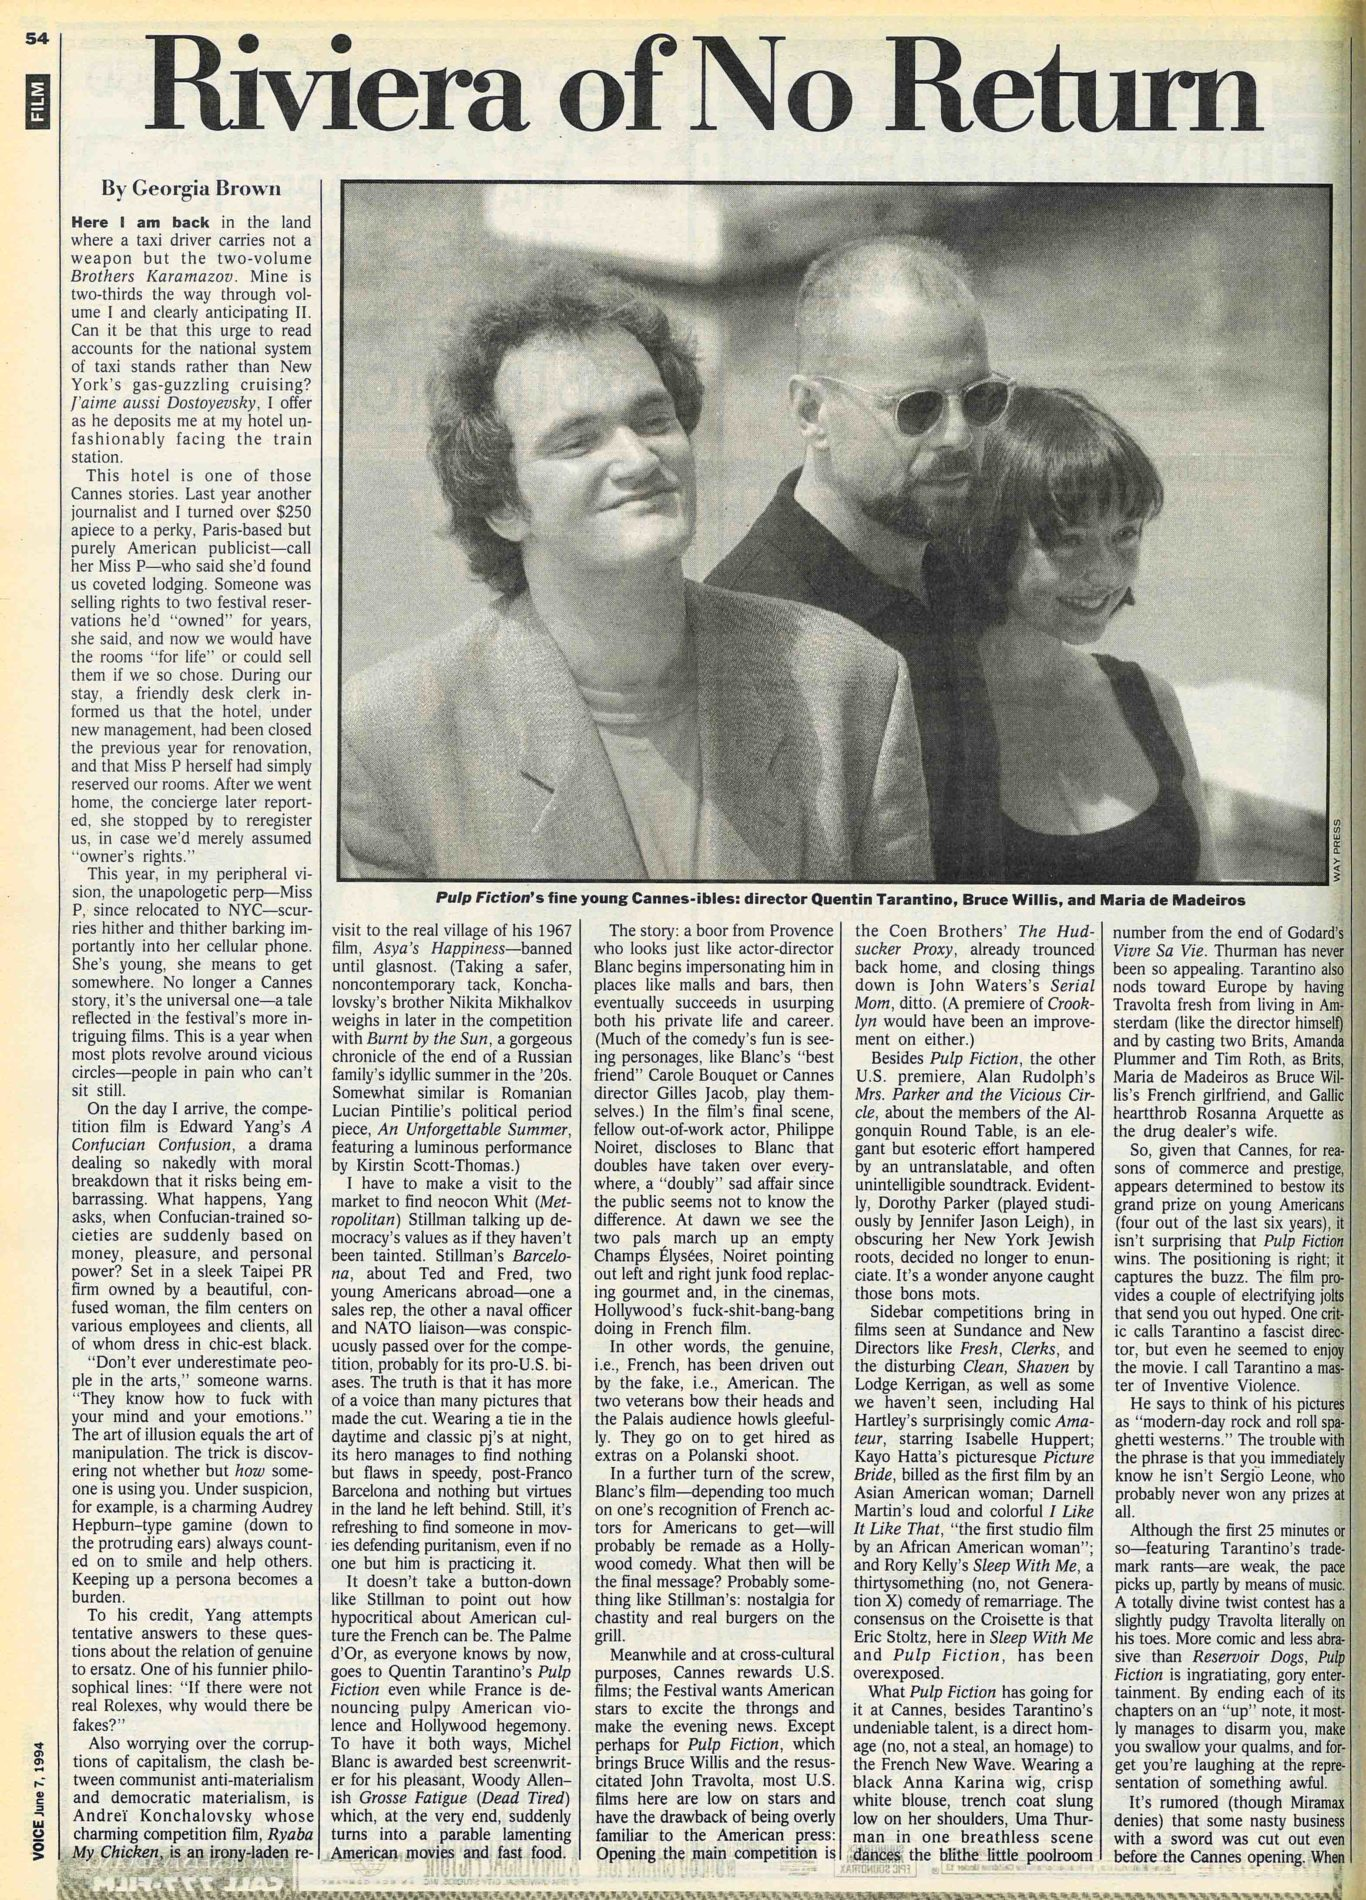 Cannes Diary, 1994: Riviera of No Return